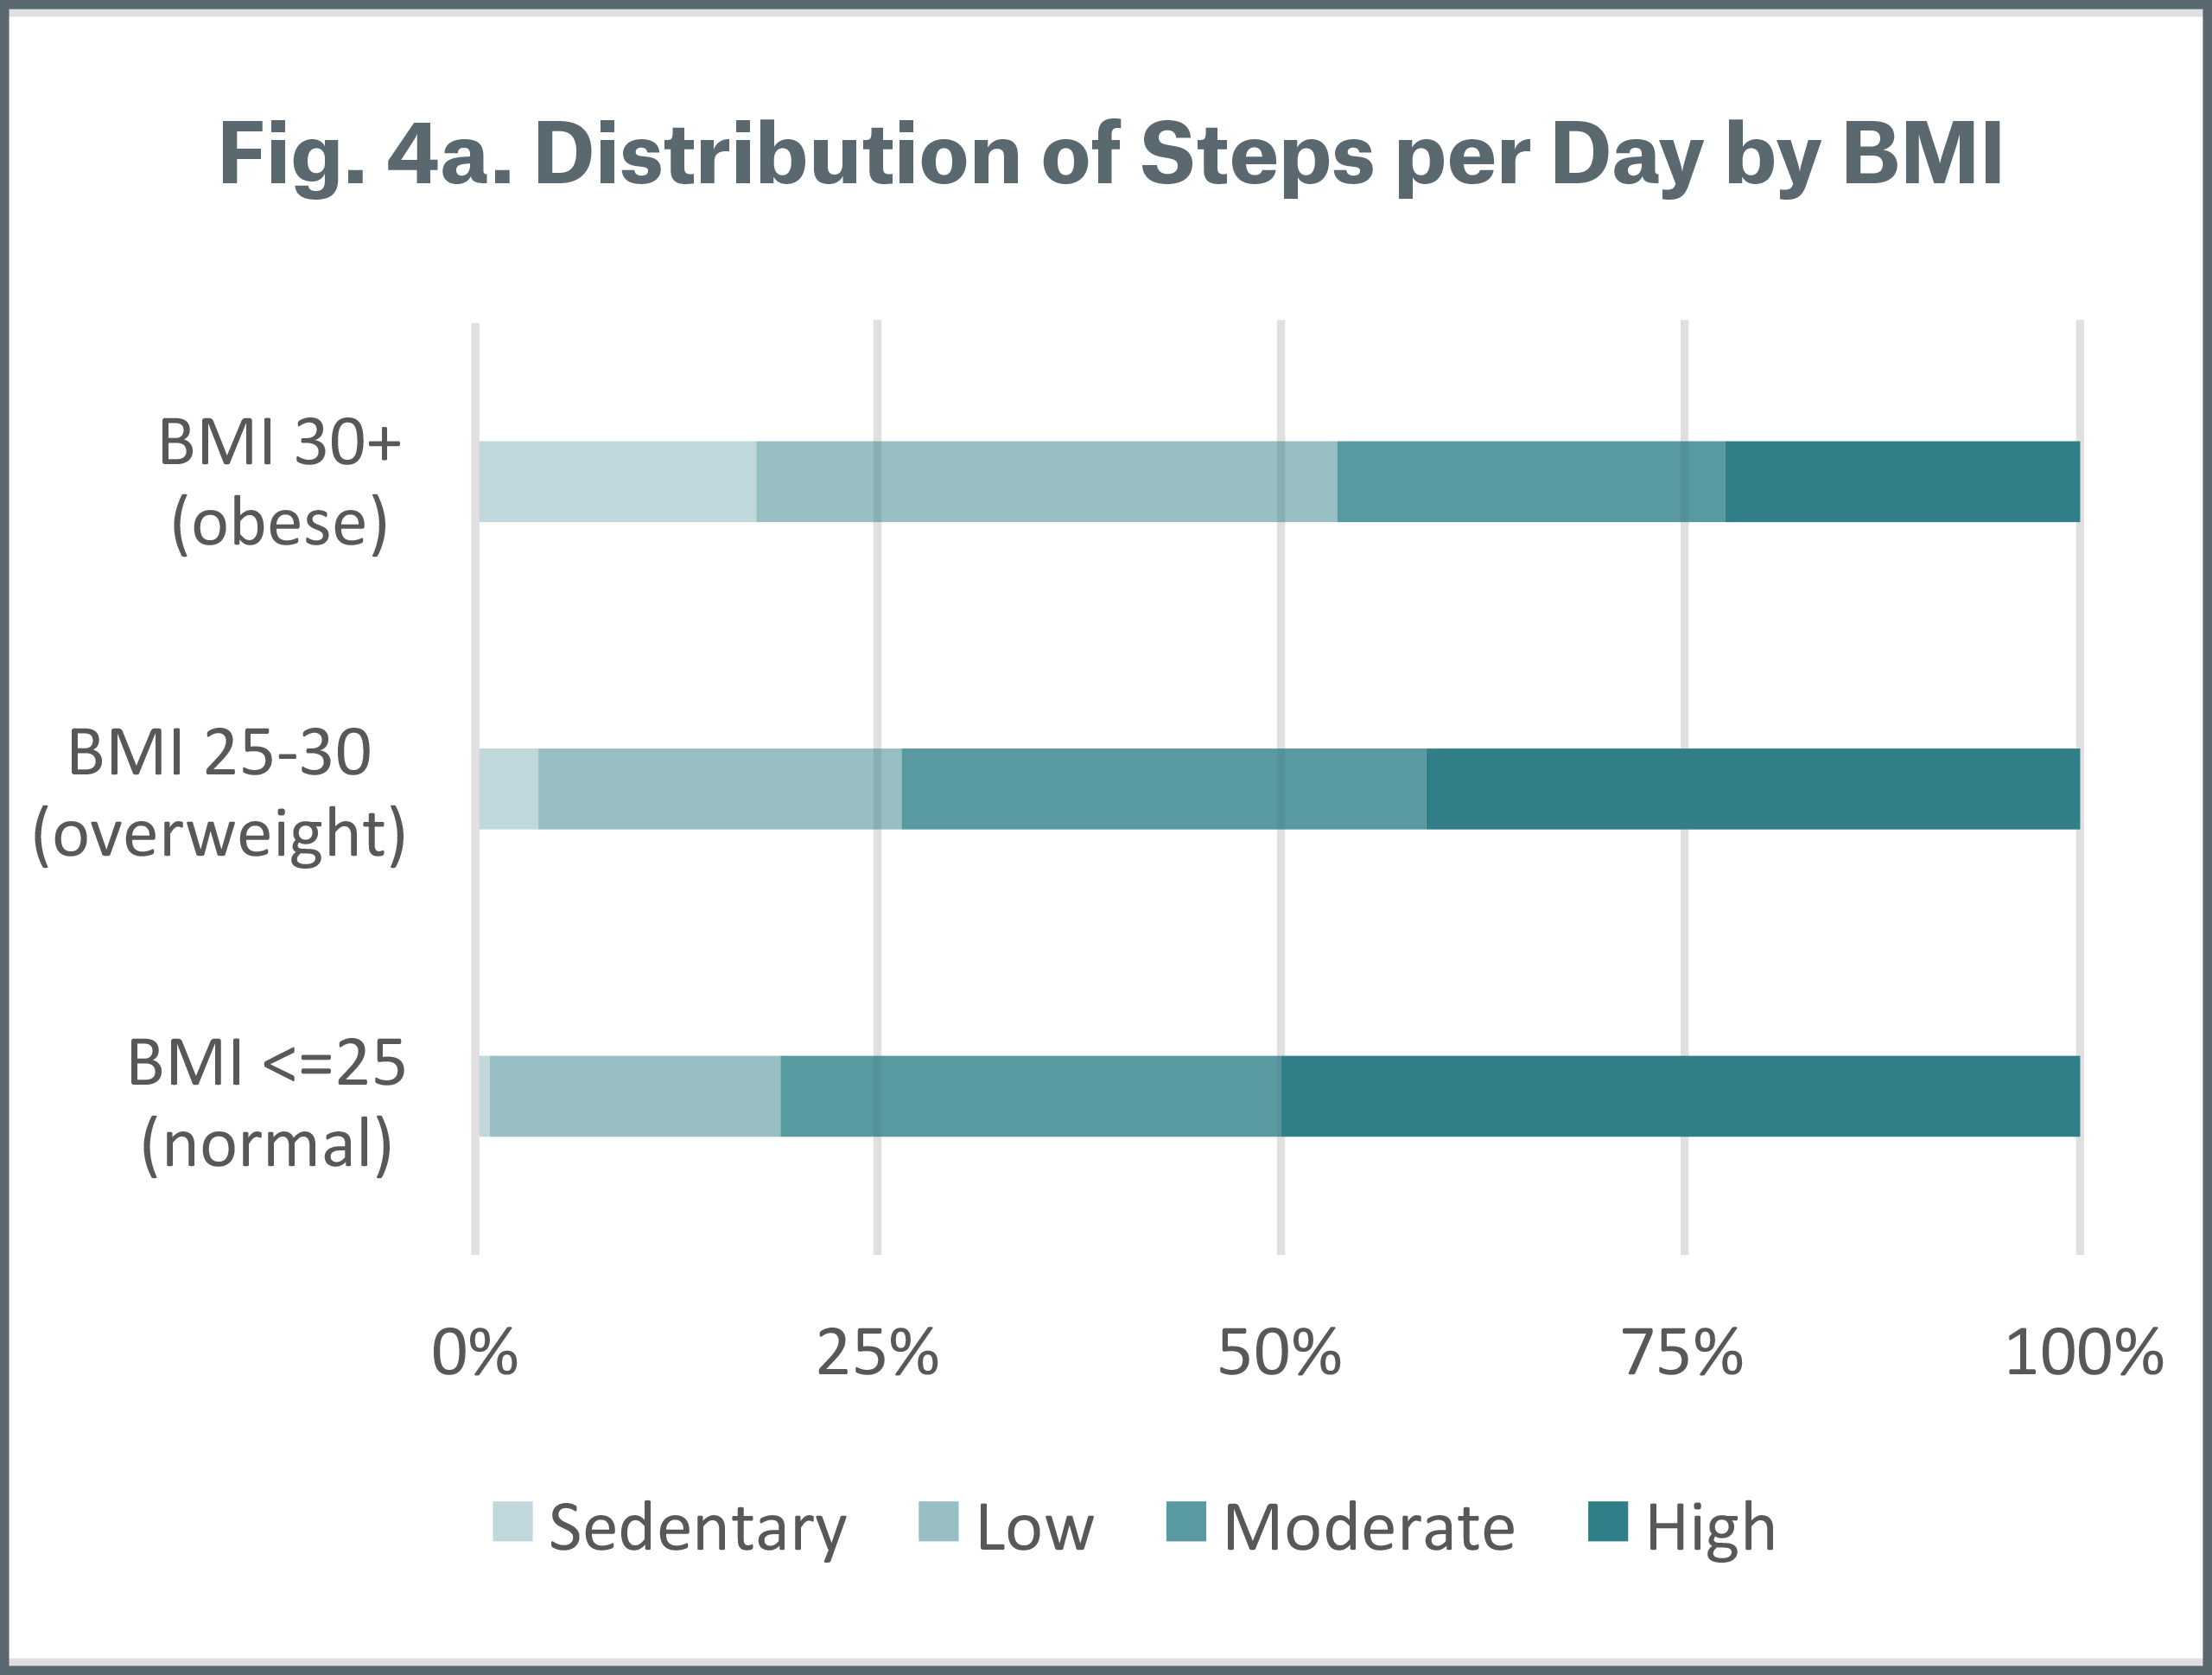 Figure 4a Distributions of Steps per Day by BMI